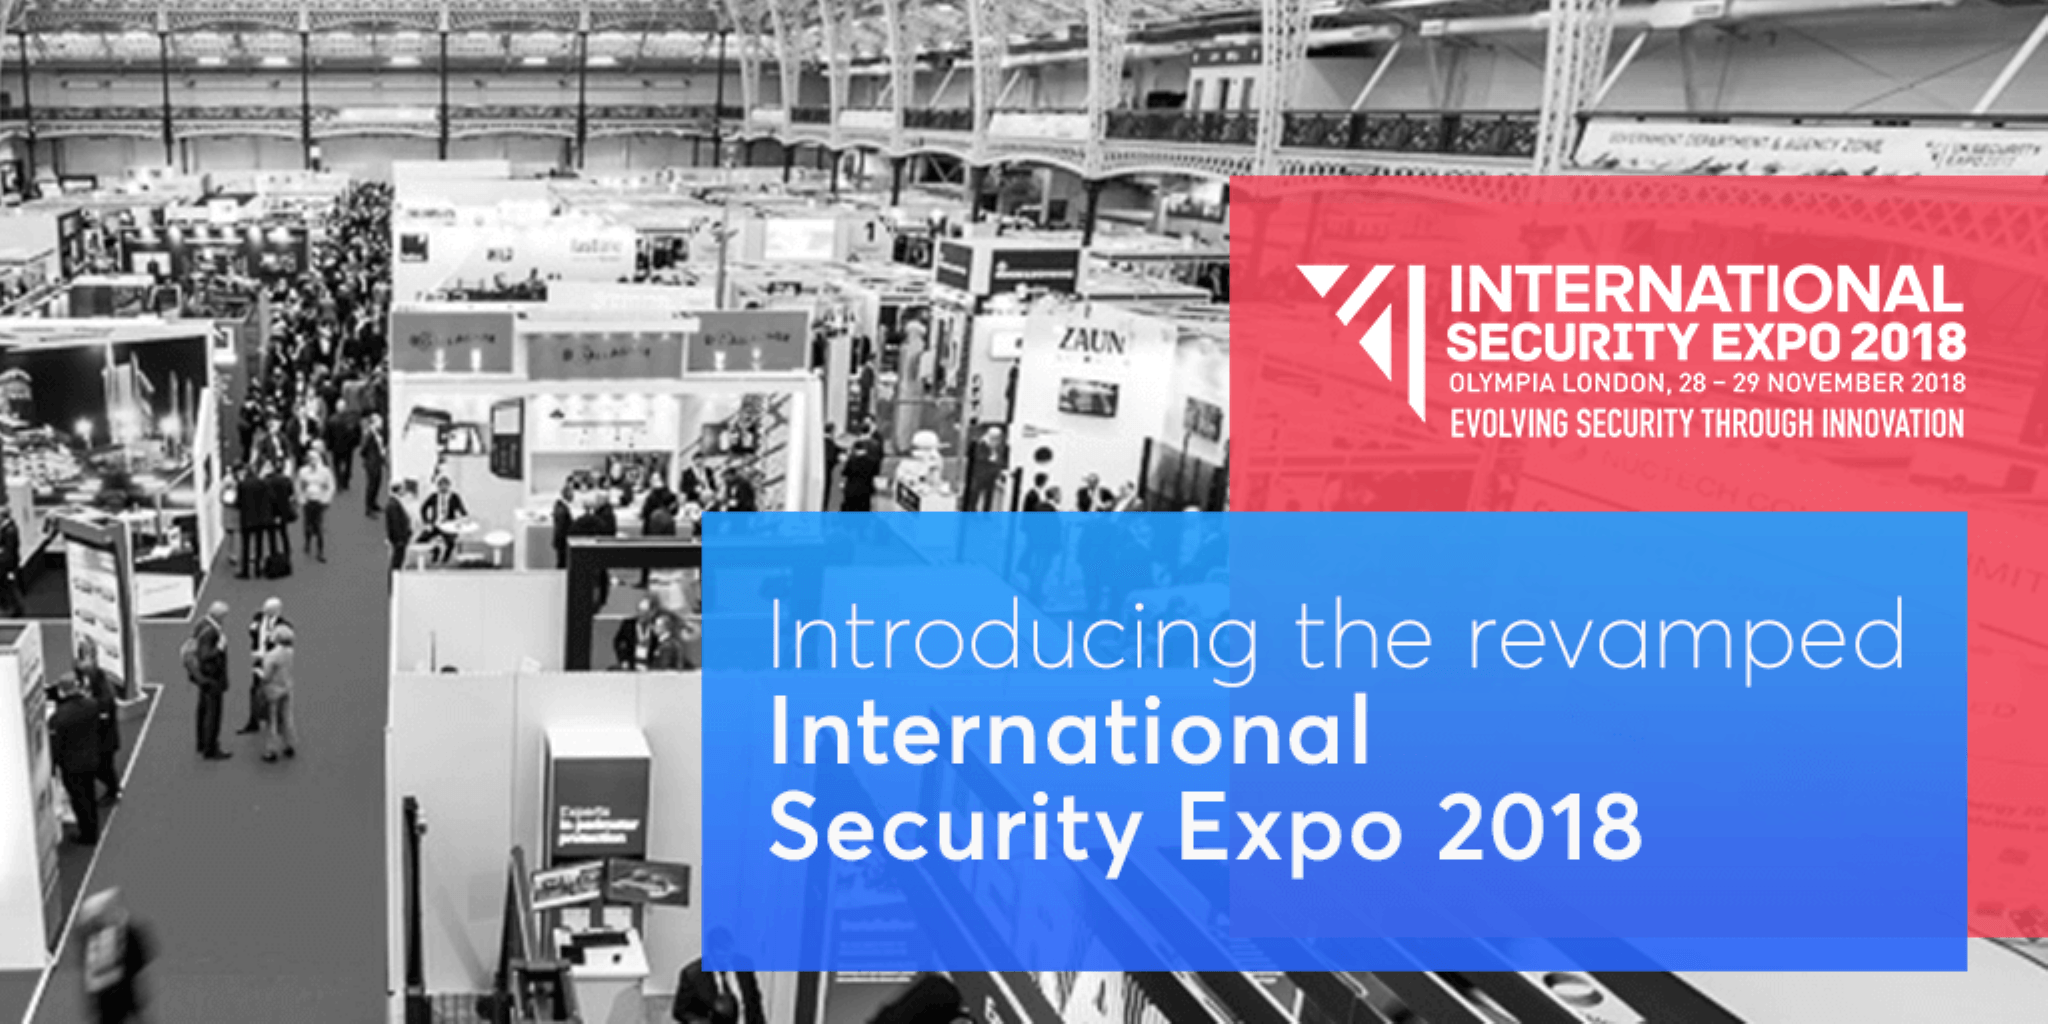 Introducing the Revamped International Security Expo 2018